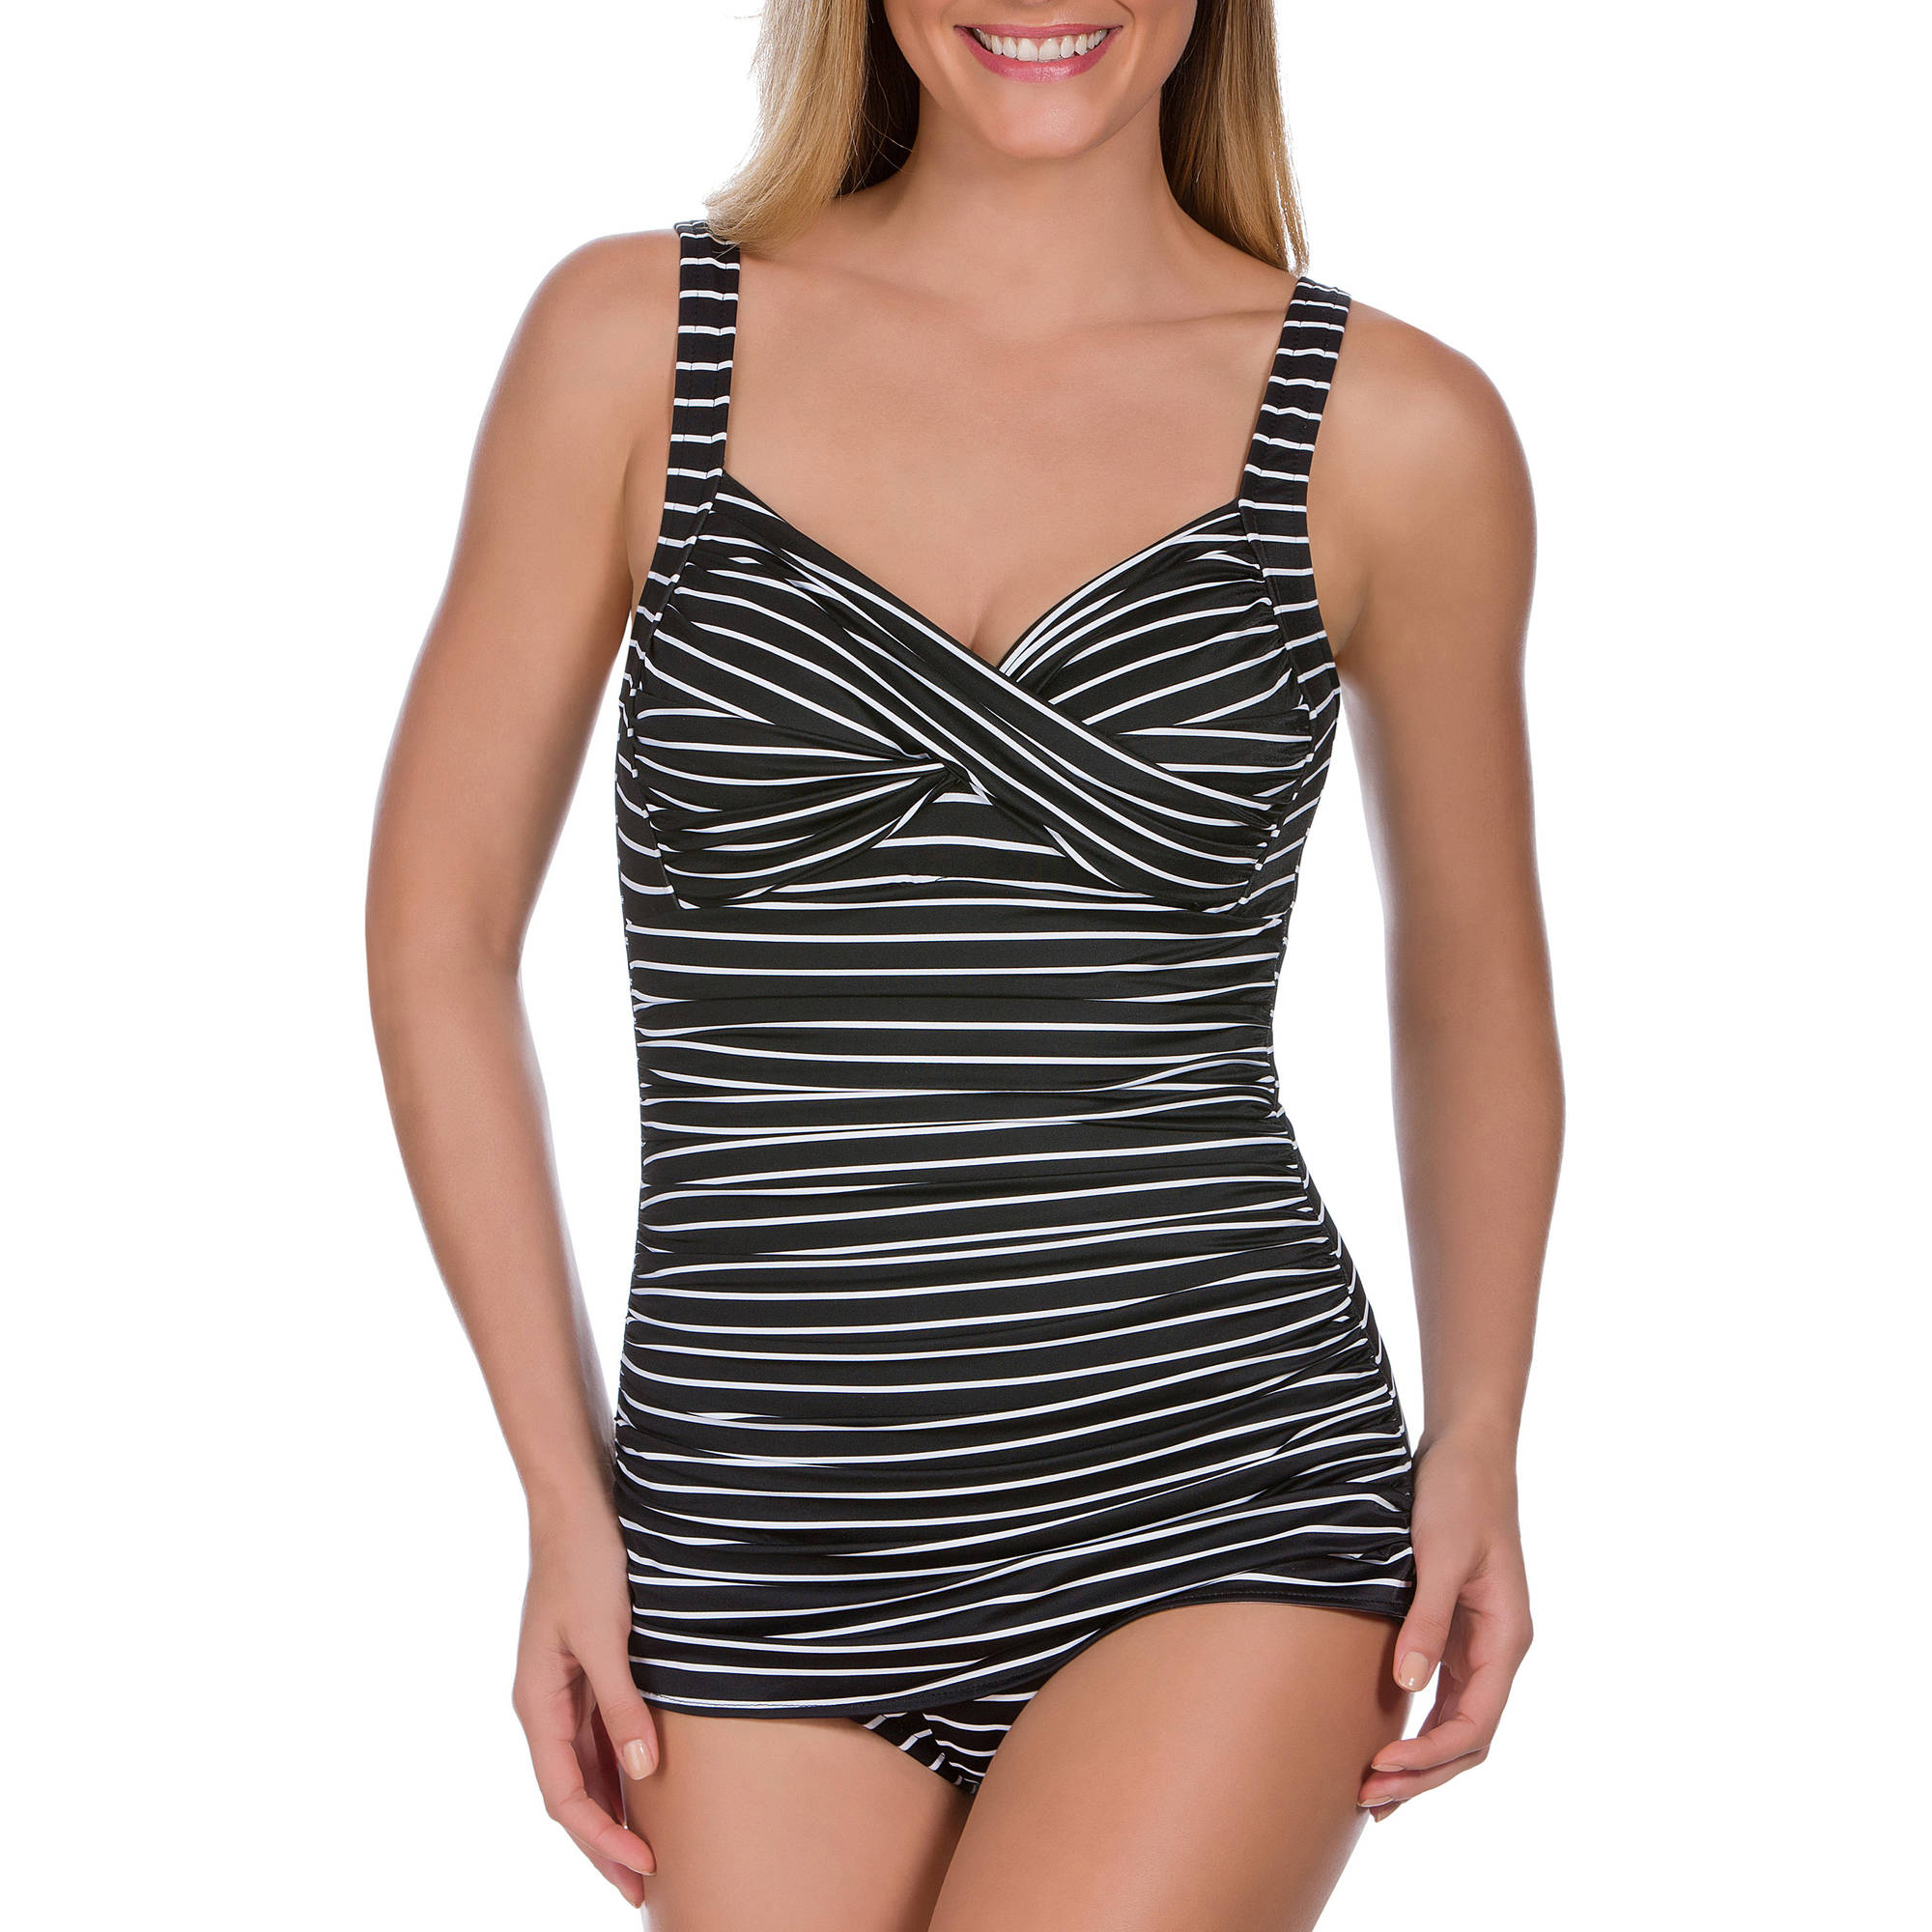 Suddenly Slim By Catalina Women's Retro Slimming One-Piece Swimsuit